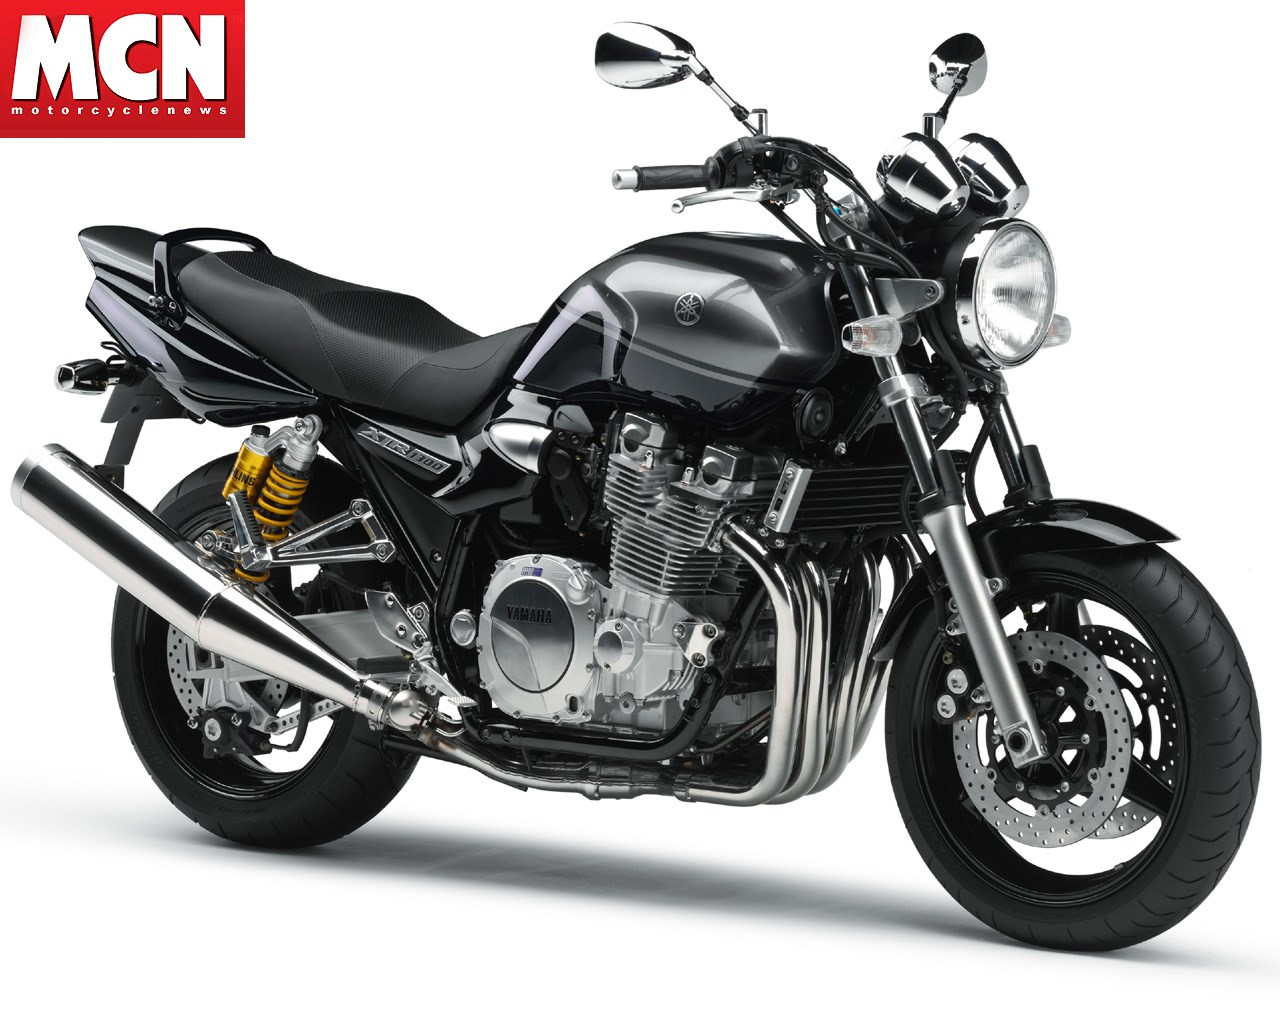 Yamaha XJR 400 R 2005 images #91281